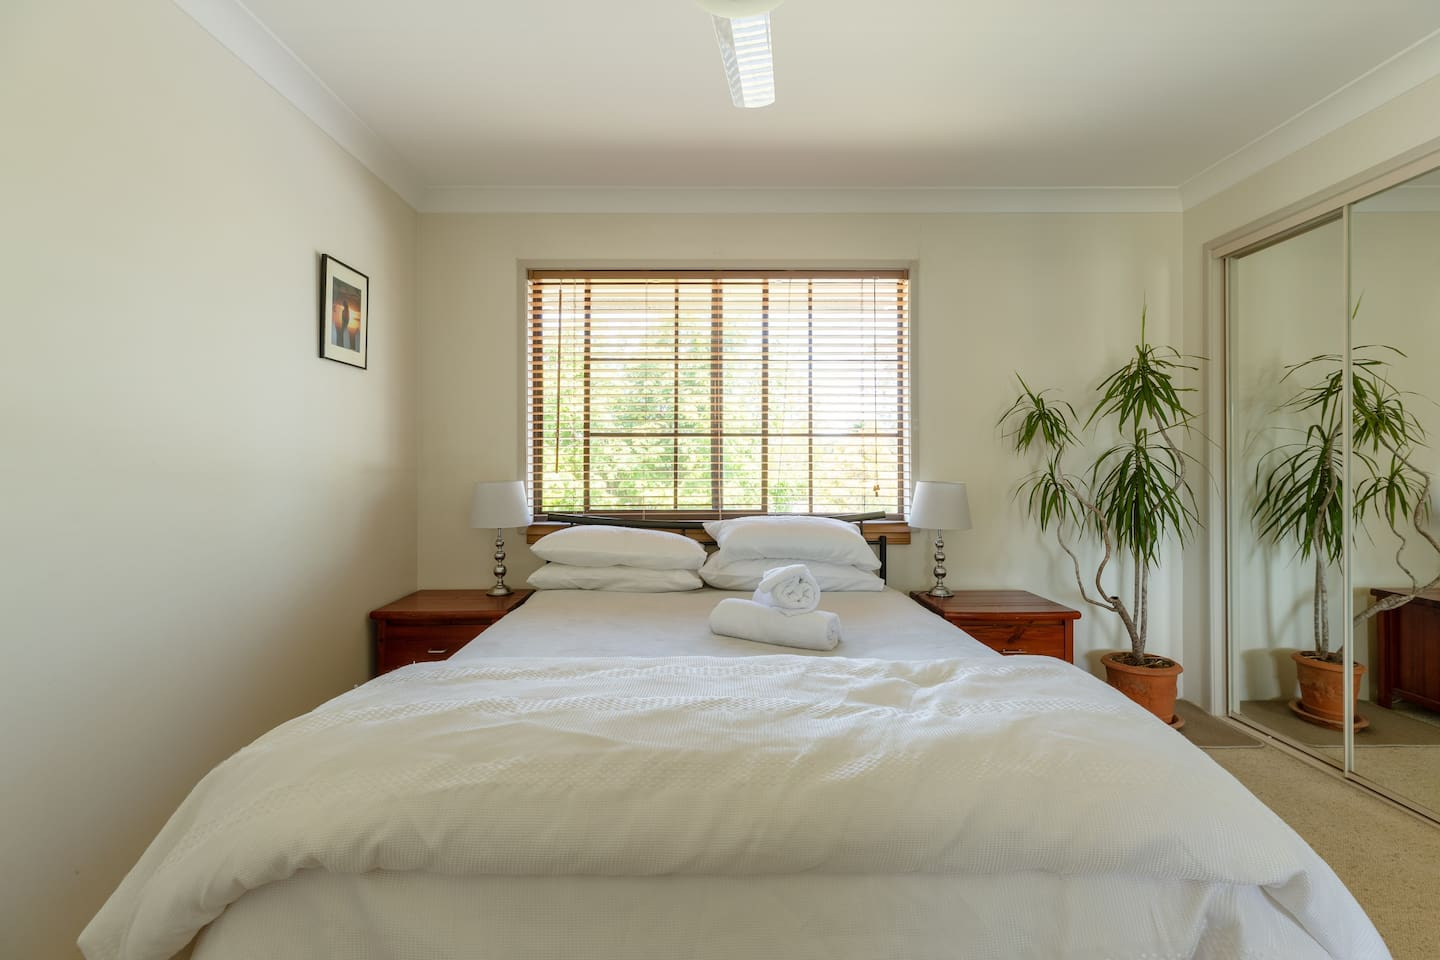 Main bedroom features a queen bed, ceiling fan, laptop study desk and large wardrobes.